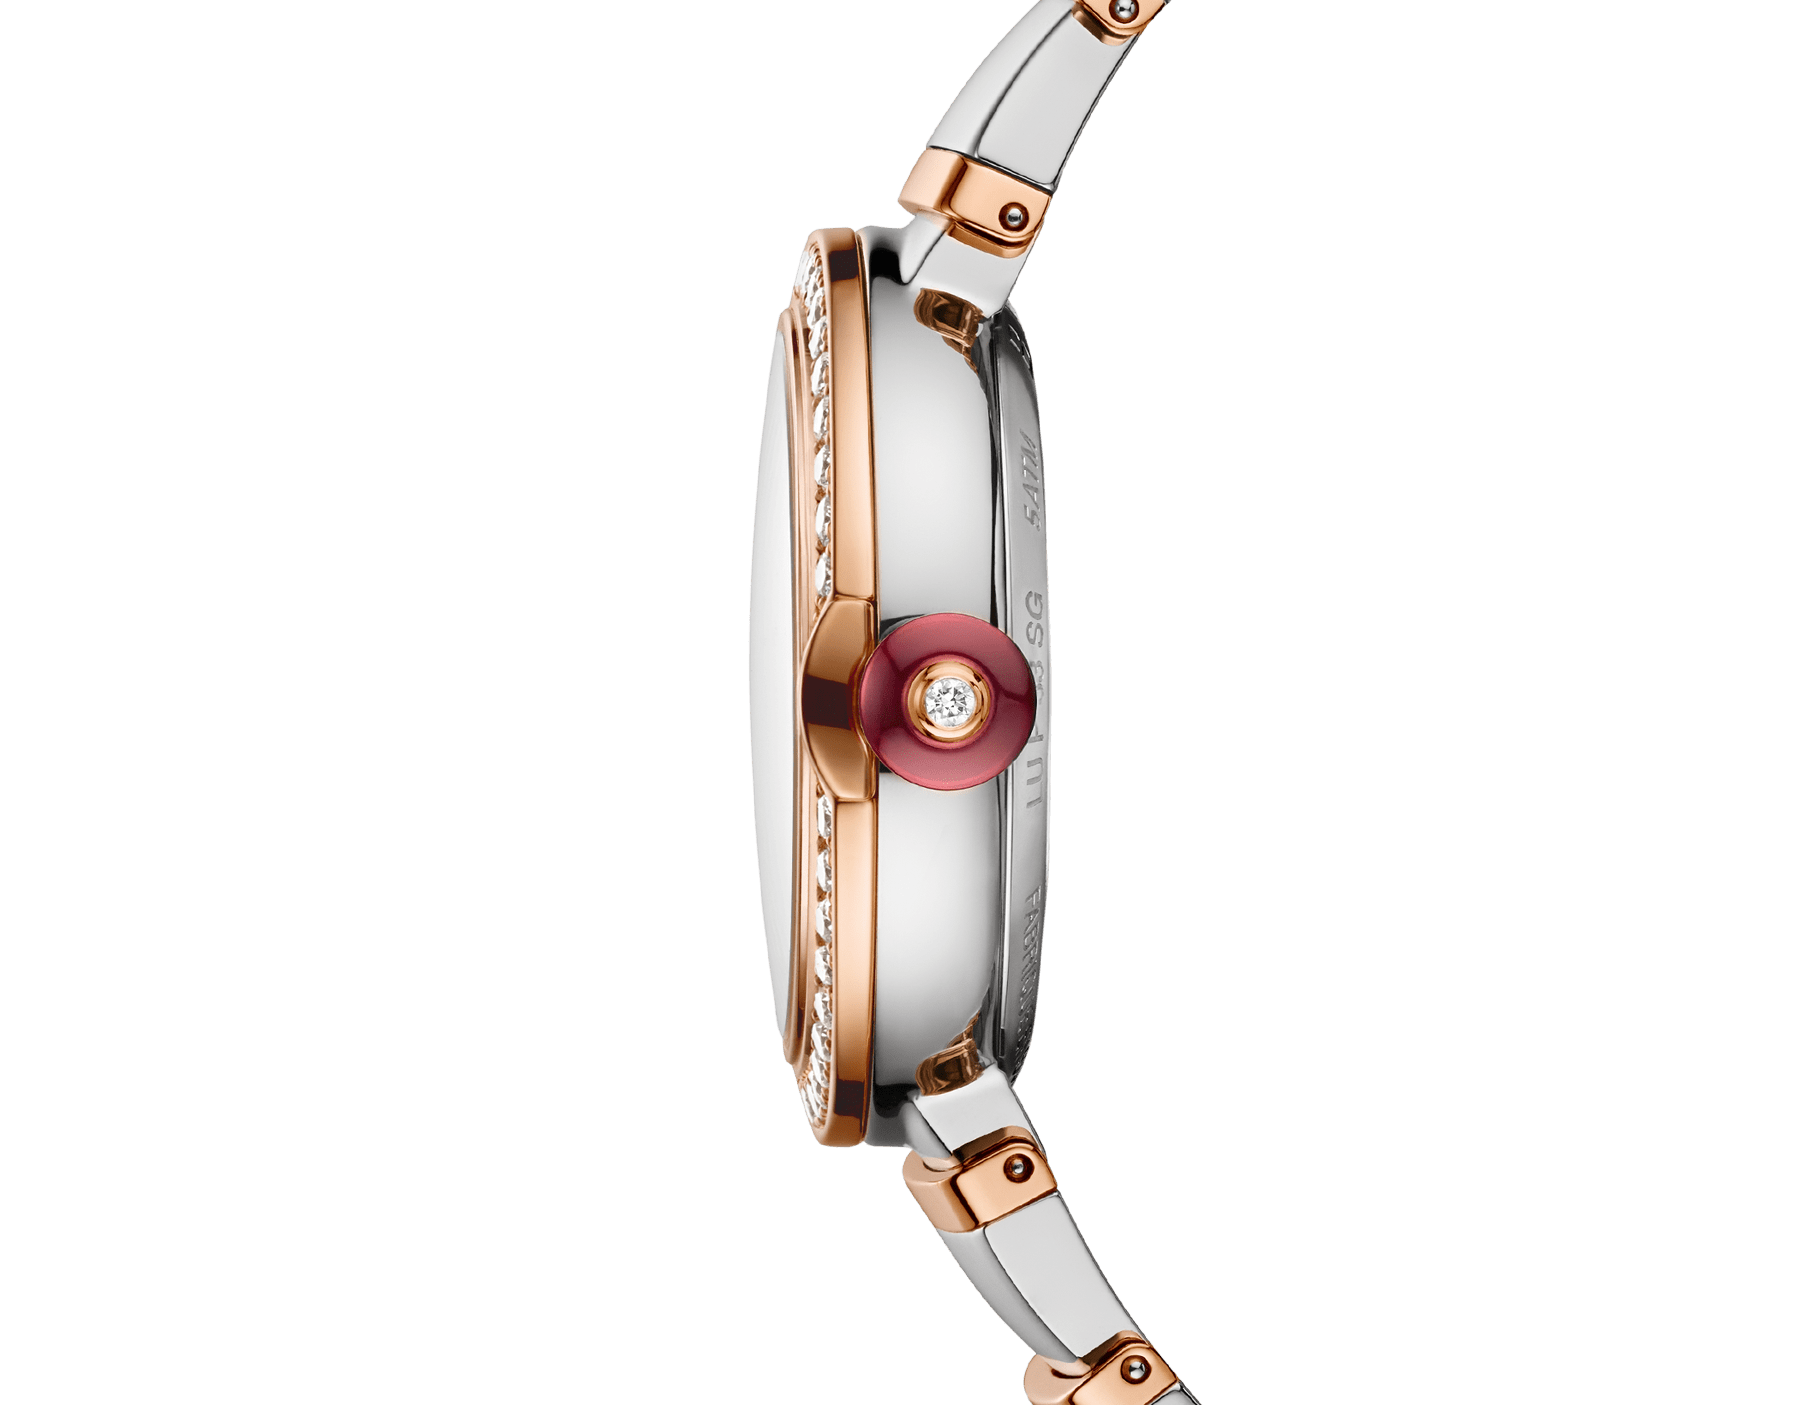 LVCEA watch in 18kt rose gold and stainless steel case and bracelet, set with diamonds on the bezel, and white mother-of-pearl dial with diamond indexes. 102476 image 4